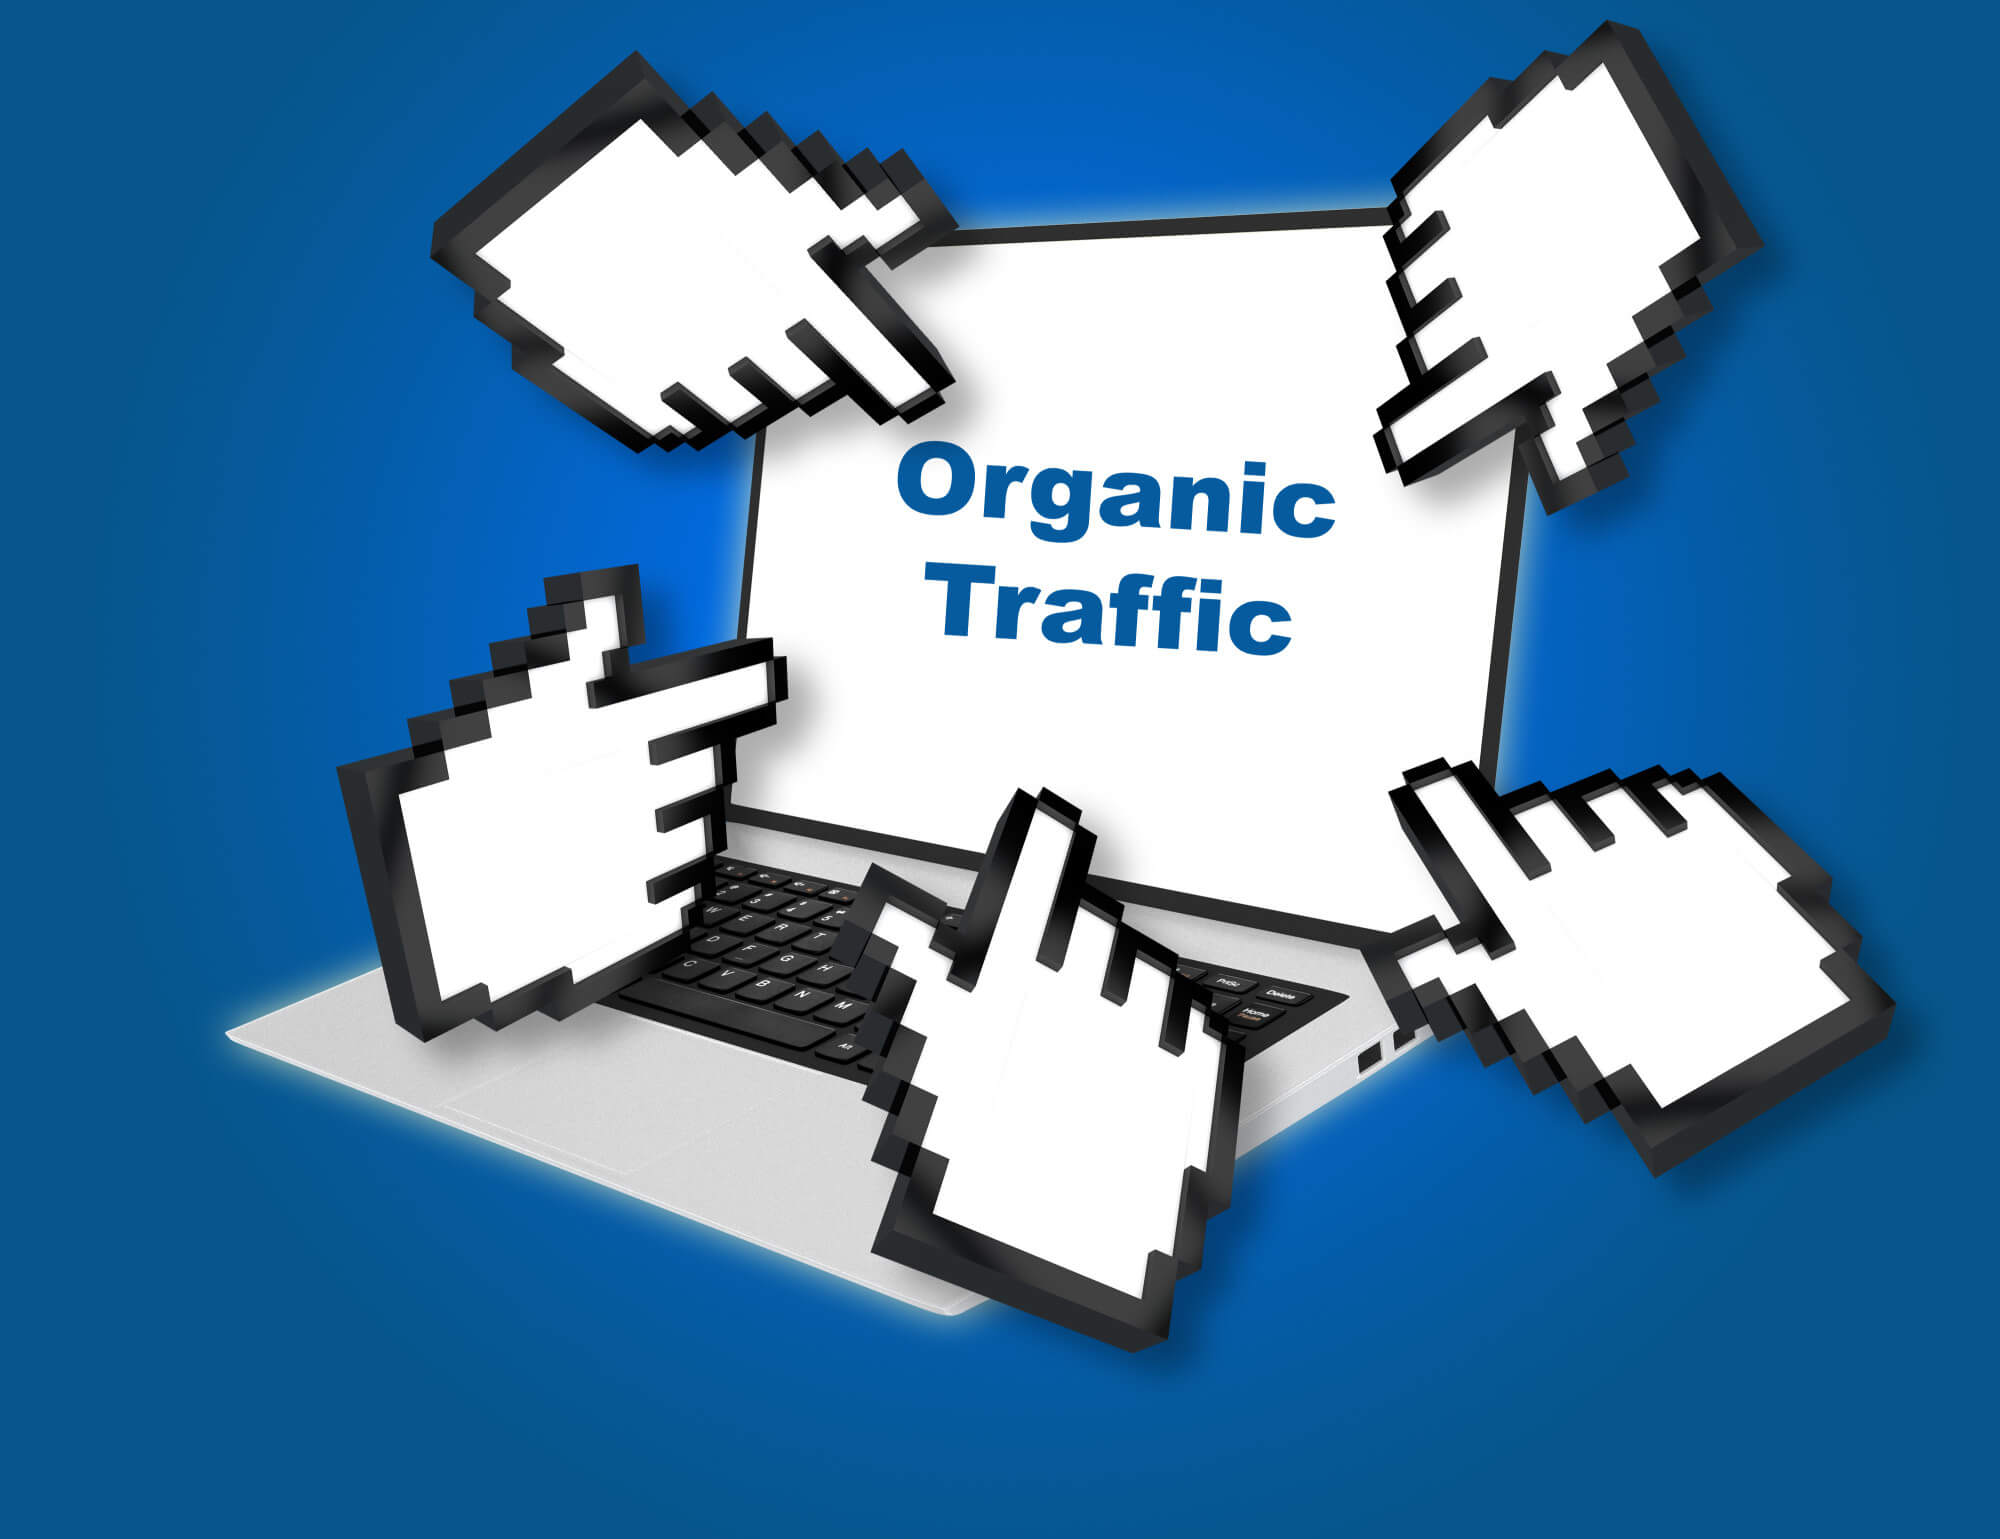 How to Write a Viral Blog Post to Gain Organic Traffic?